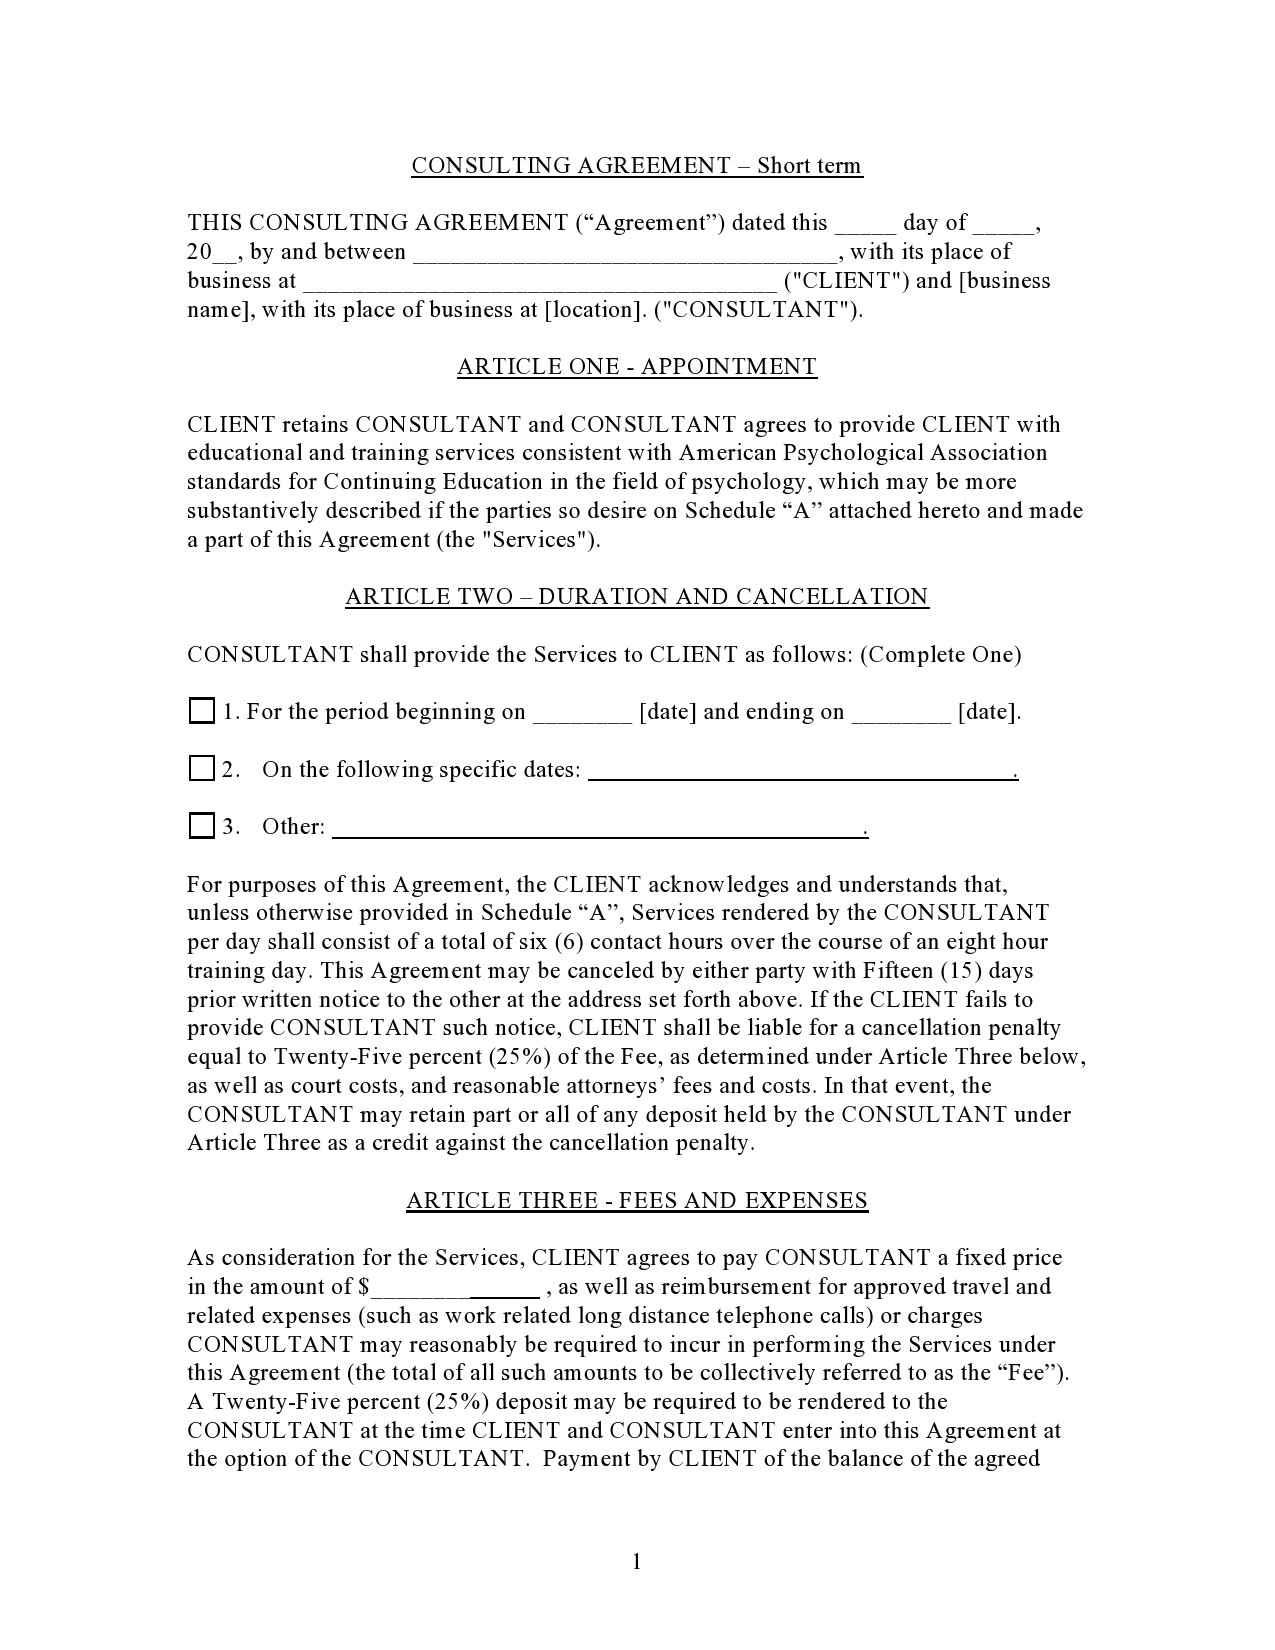 Free consulting contract template 14